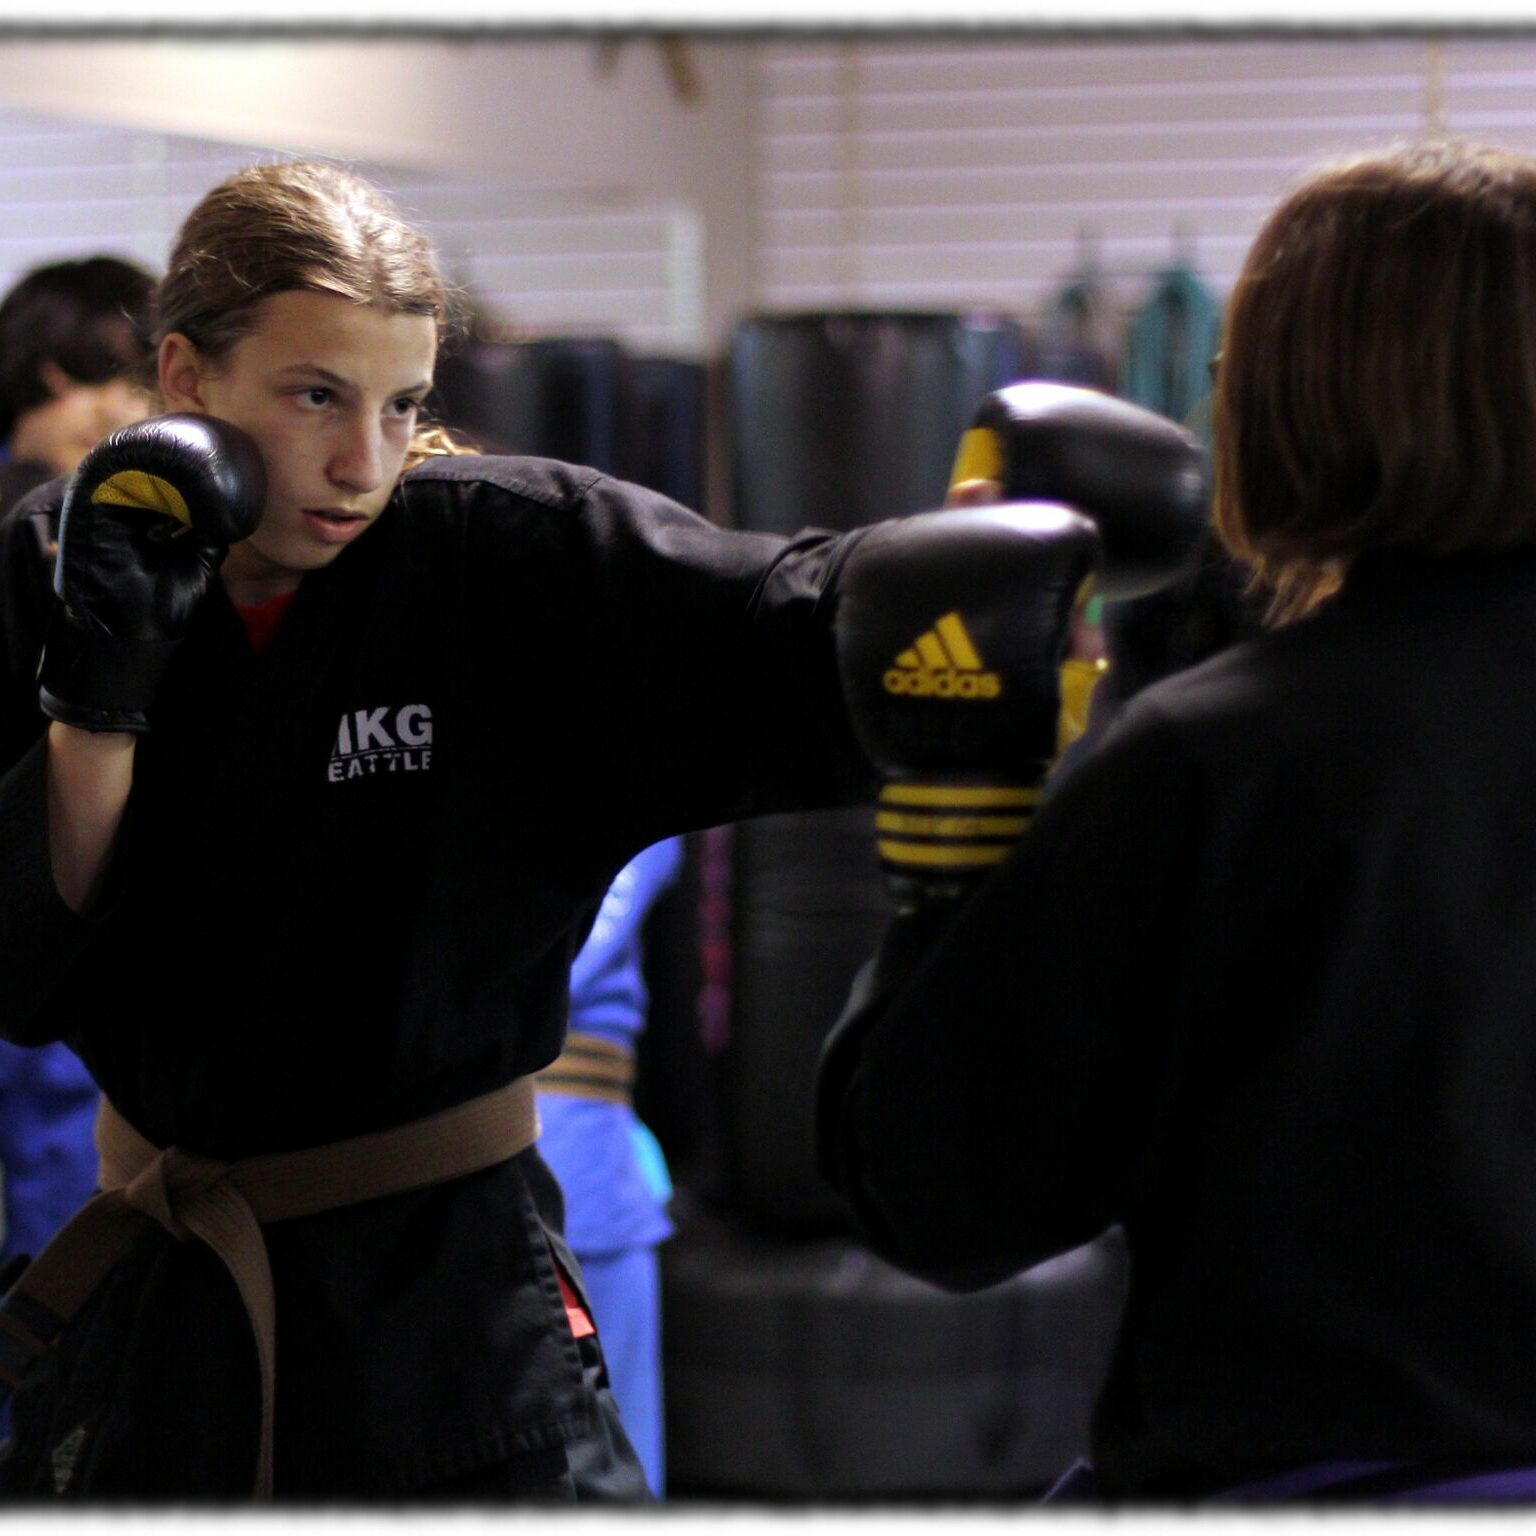 Kids_martial_arts_4